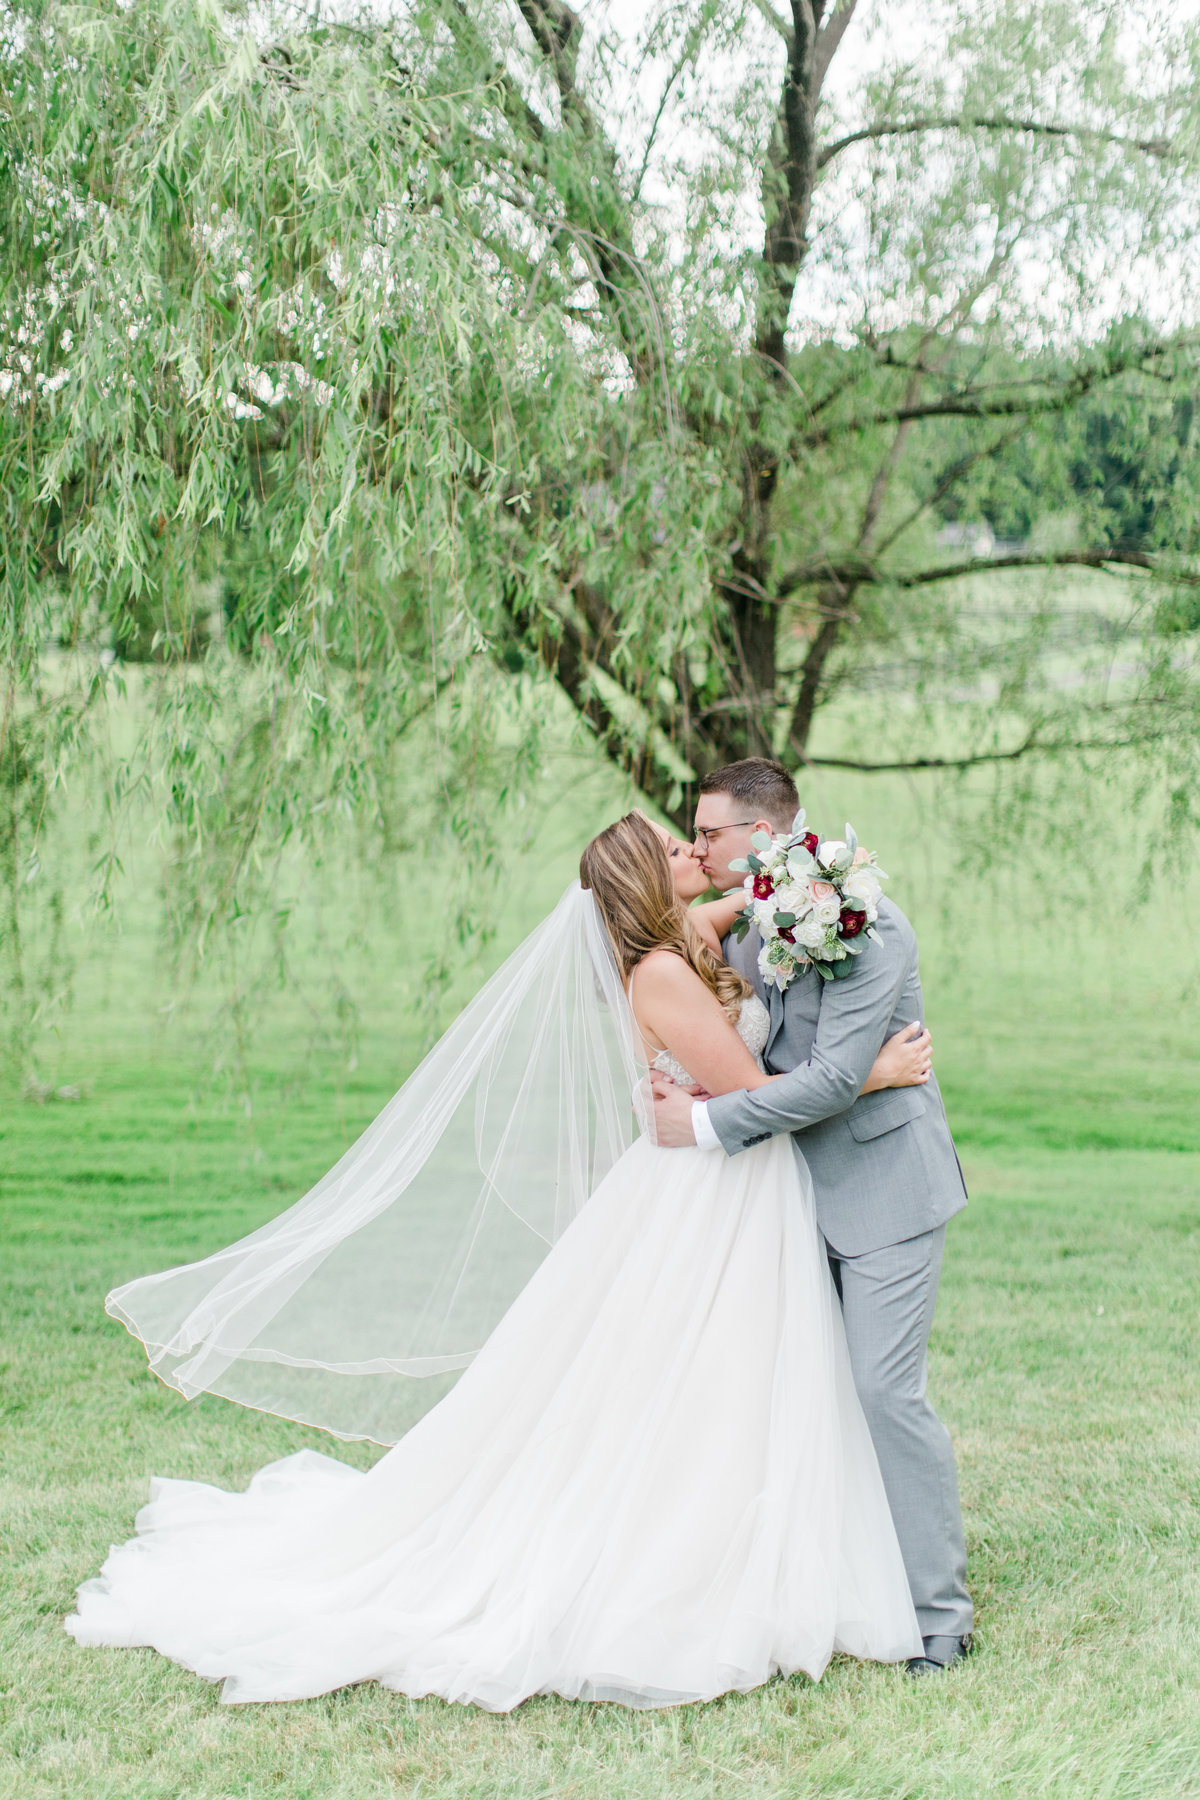 RockHillPlantation_Wedding_KatieZach_AngelikaJohnsPhotography-4574